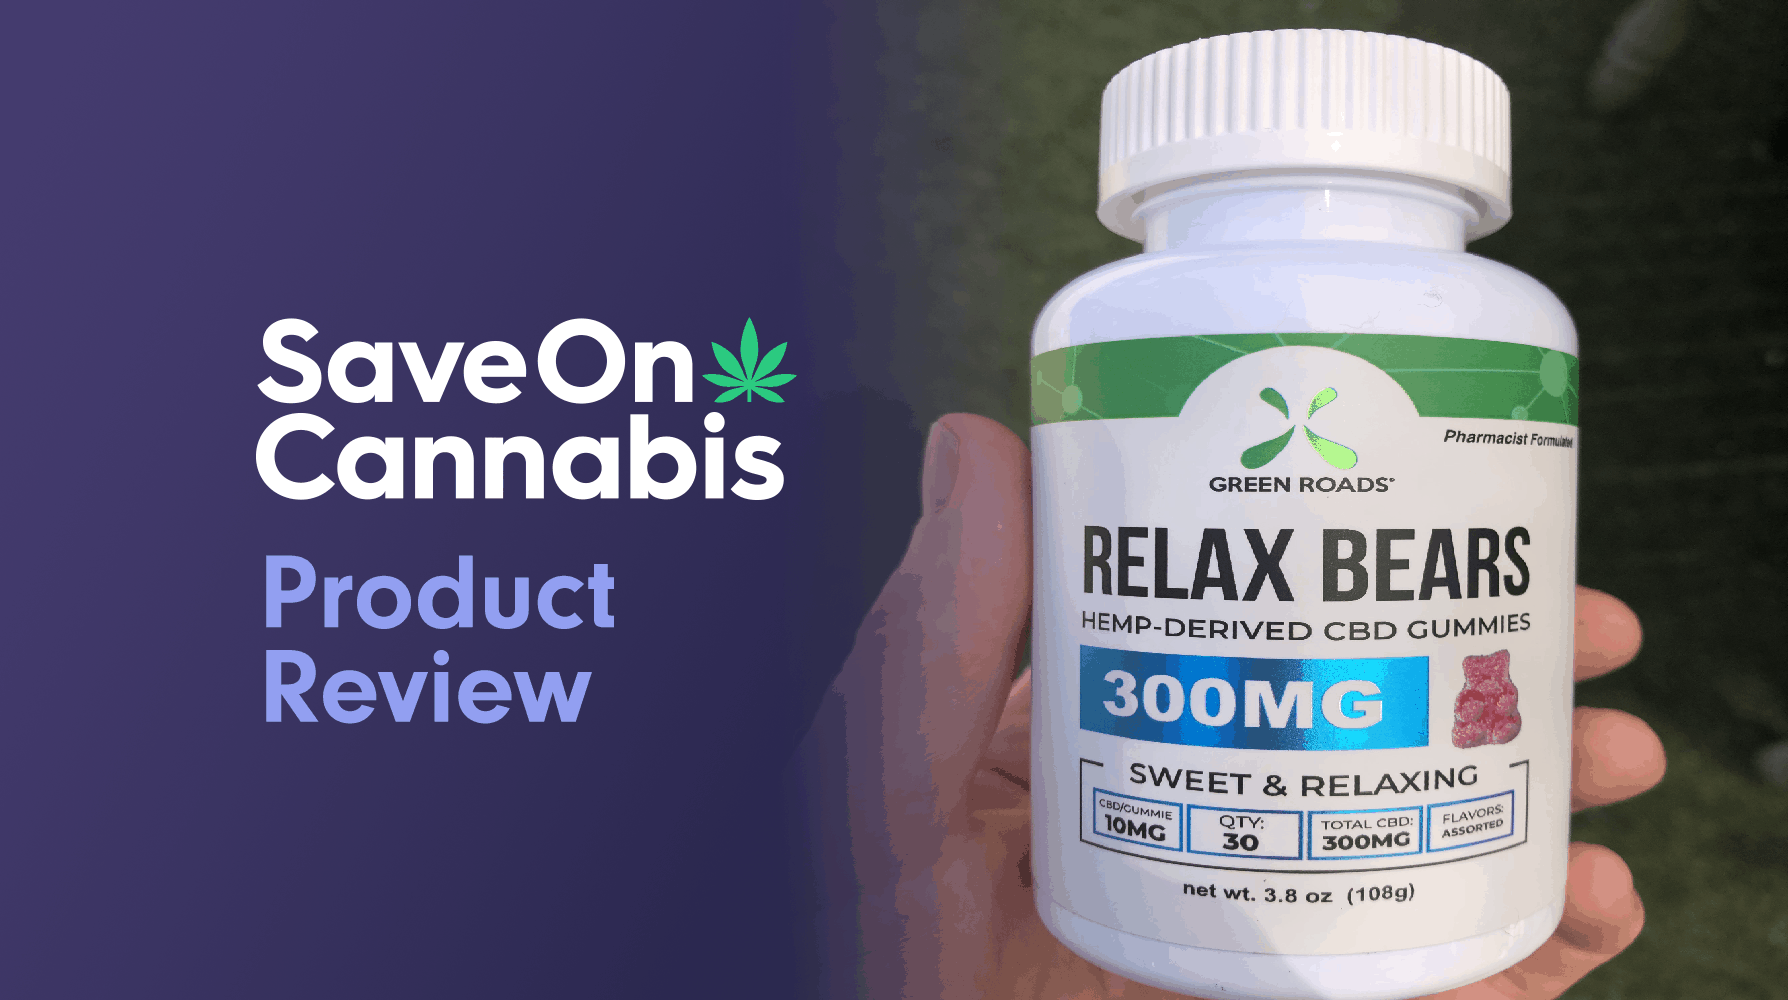 green roads relax bears save on cannabis review website